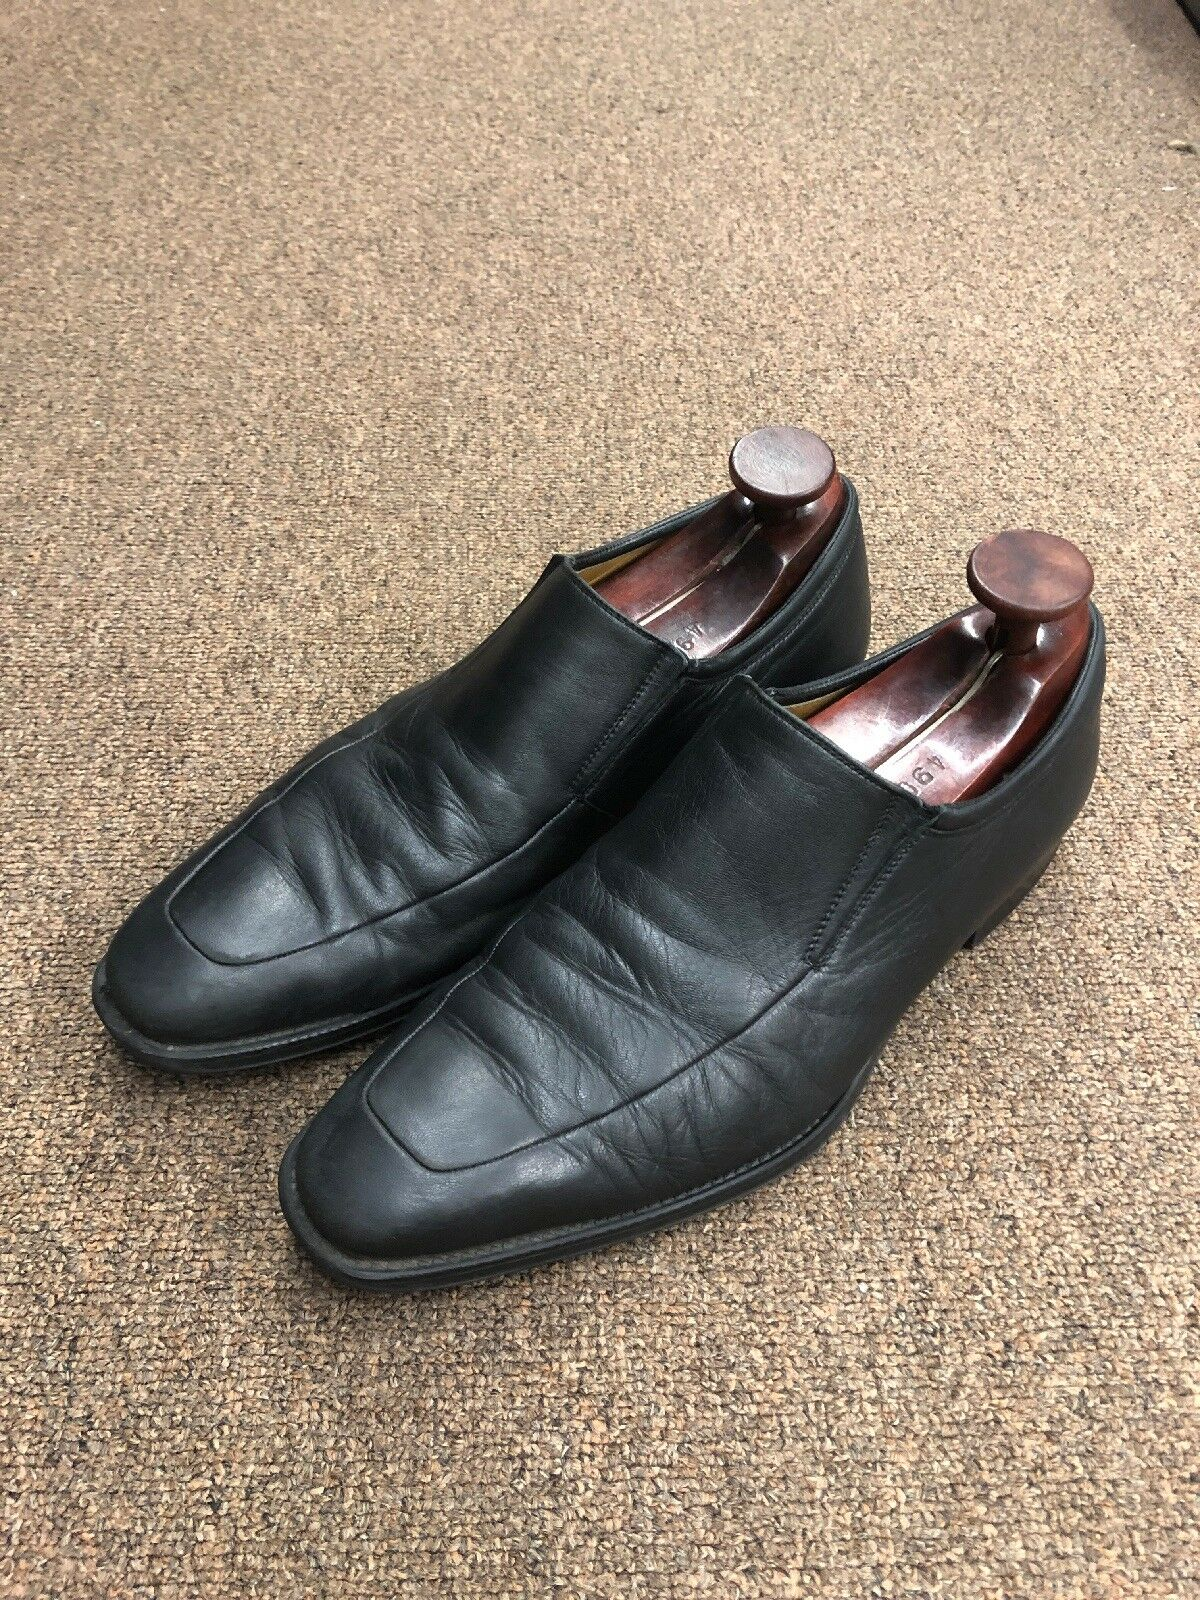 Magnanni Dress shoes Loafers Size 11 Black Leather Loafers Z-27